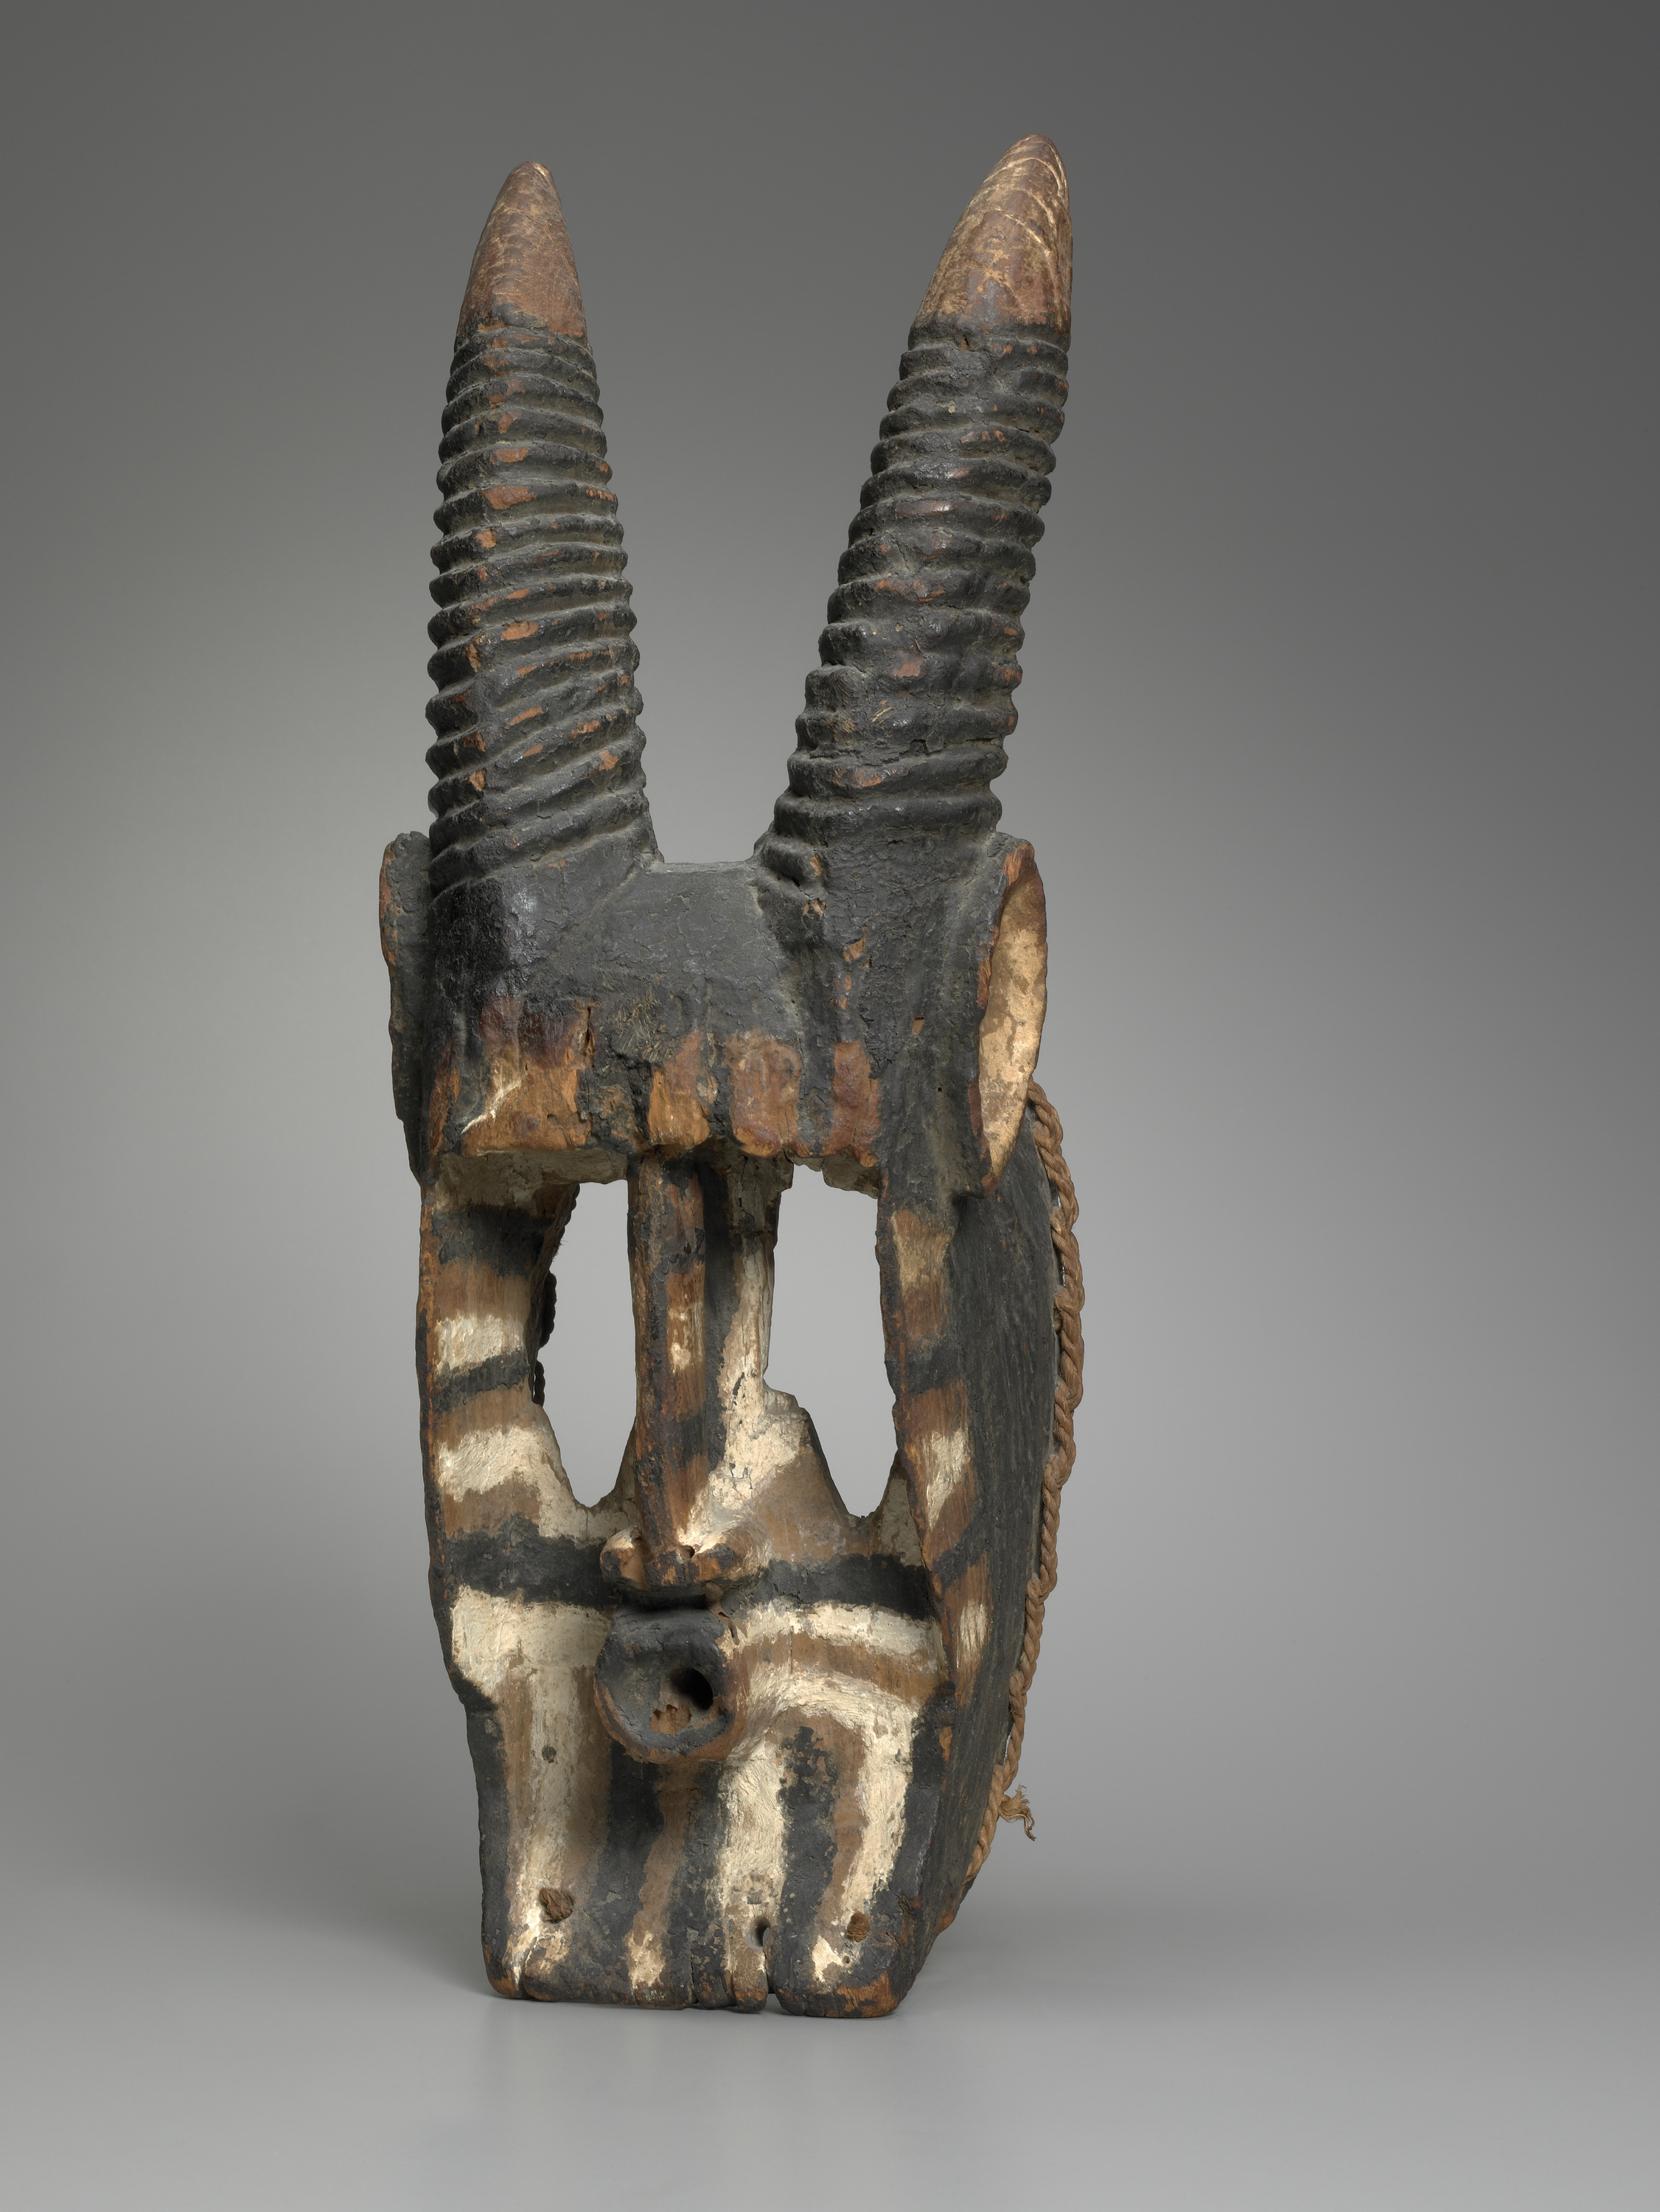 Dogon Culture, Mask representing an antelope (Walu), 19th century